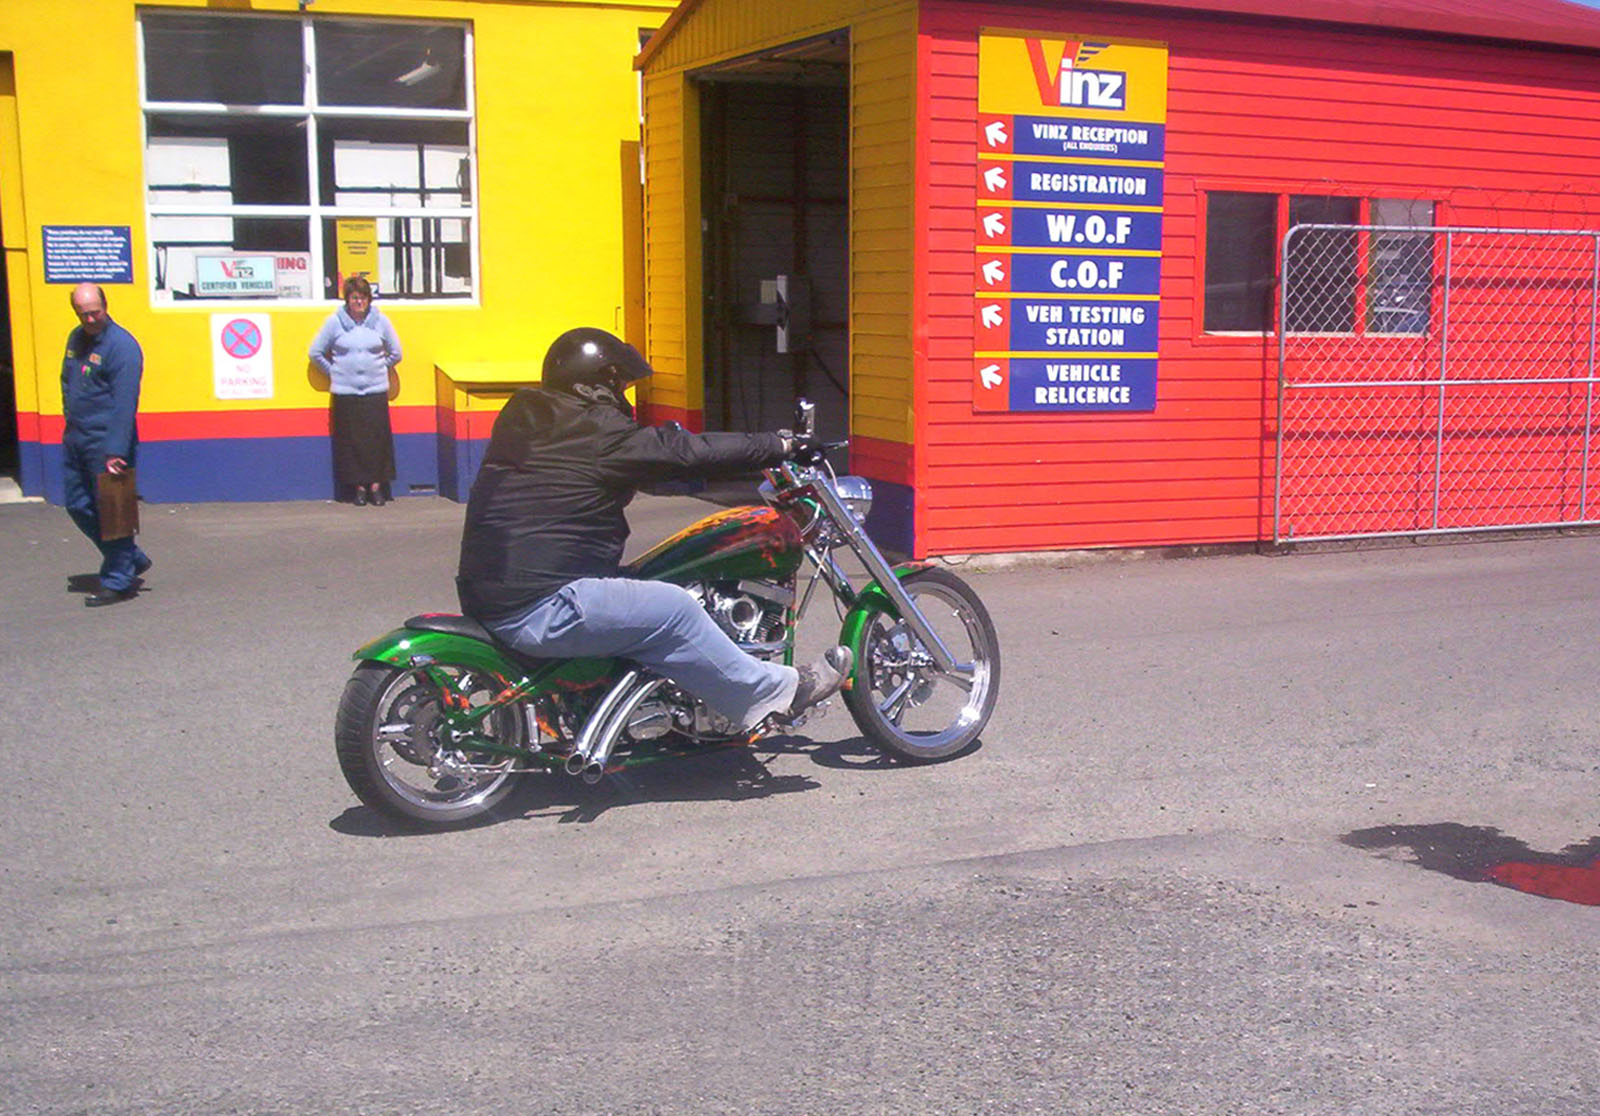 Green Hog, Bspo06, Davidson, Forks, Harley, HQ Photo